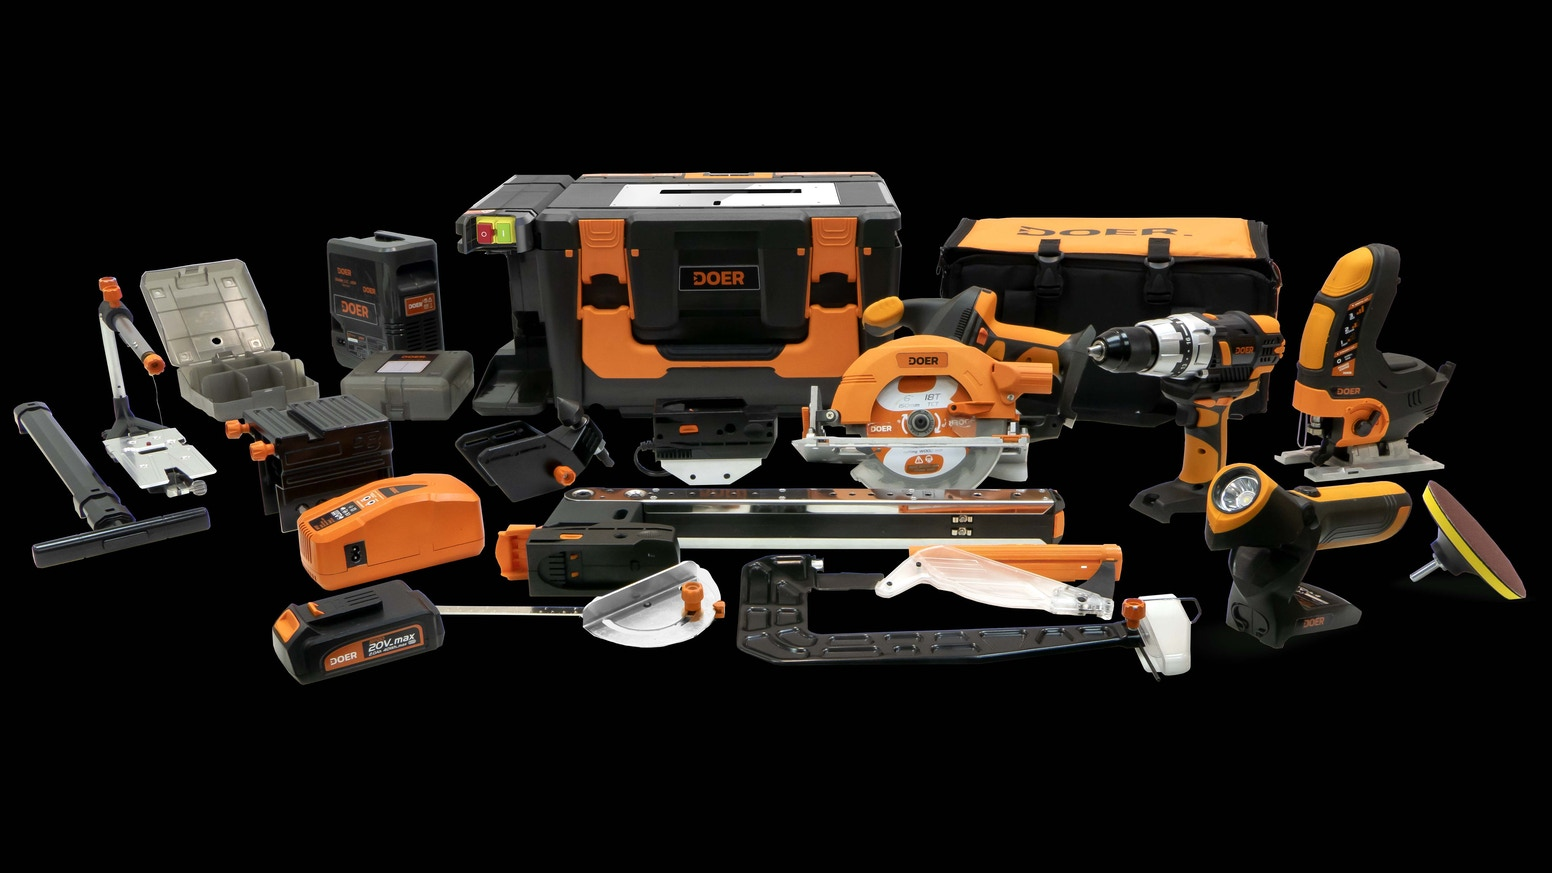 A 12-in-1 multi-purpose toolbox that transforms handheld tools into benchtop tools in seconds.